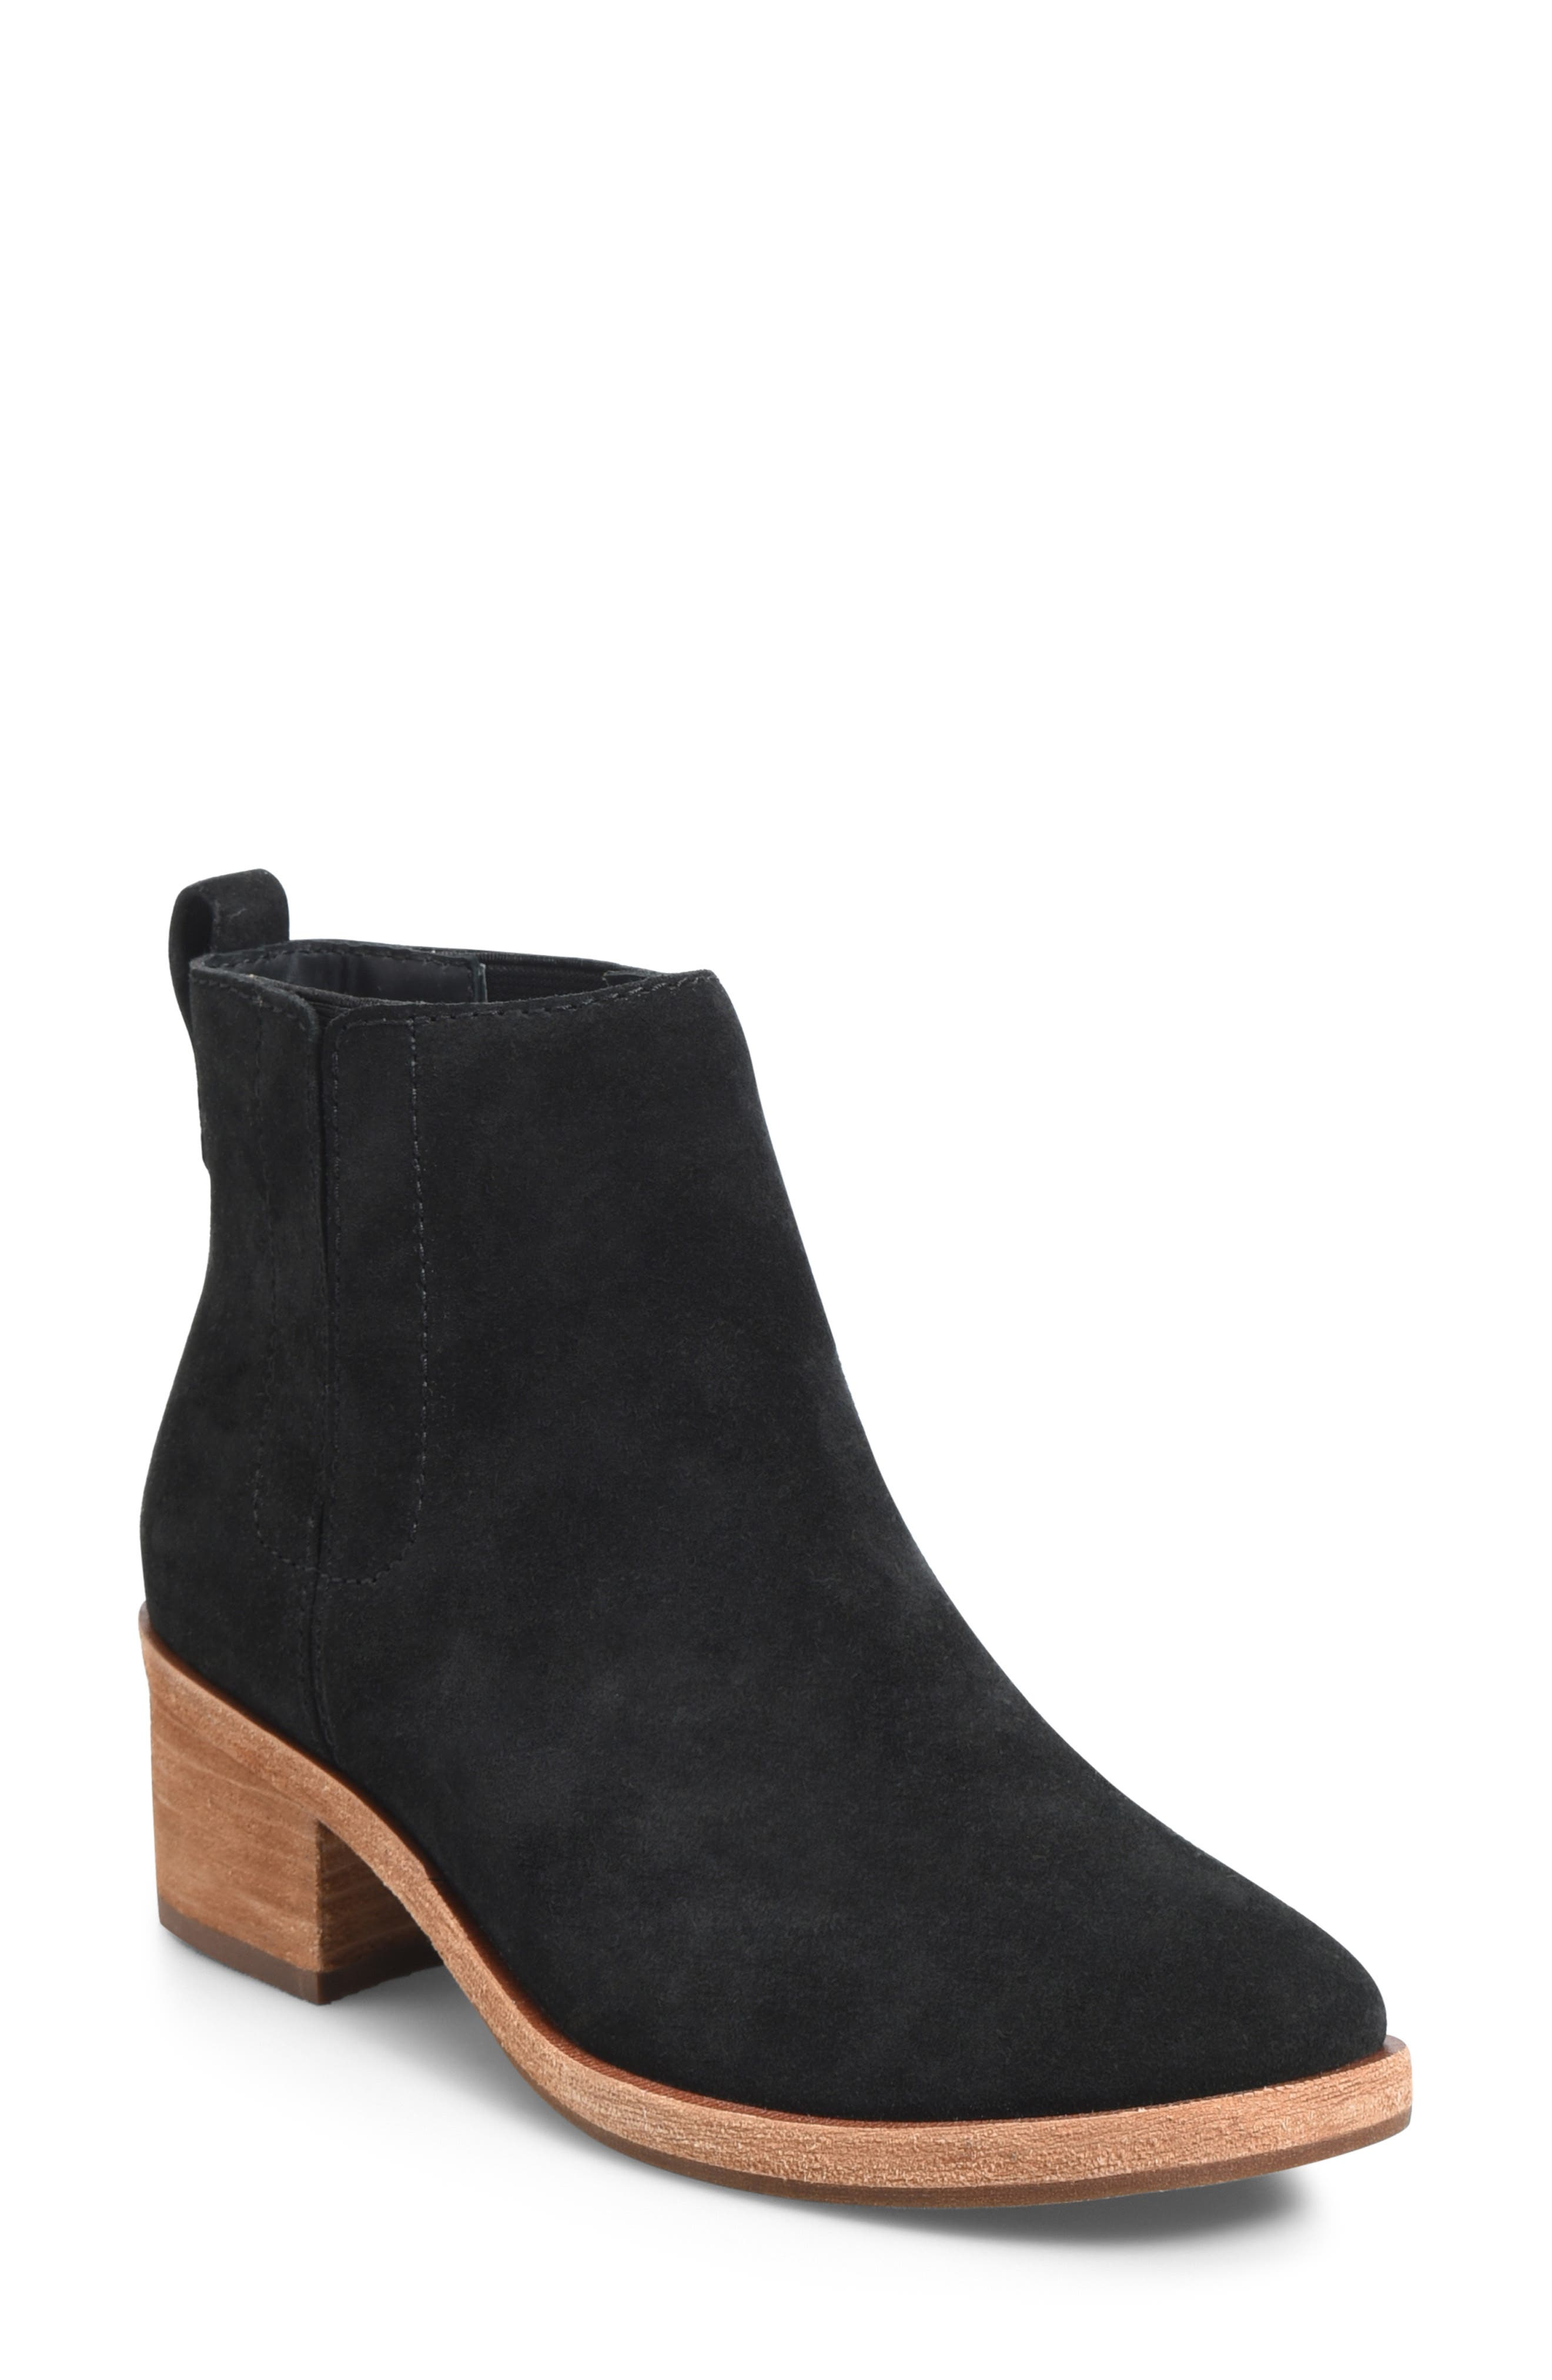 KORK-EASE<SUP>®</SUP>, Mindo Chelsea Bootie, Main thumbnail 1, color, BLACK SUEDE